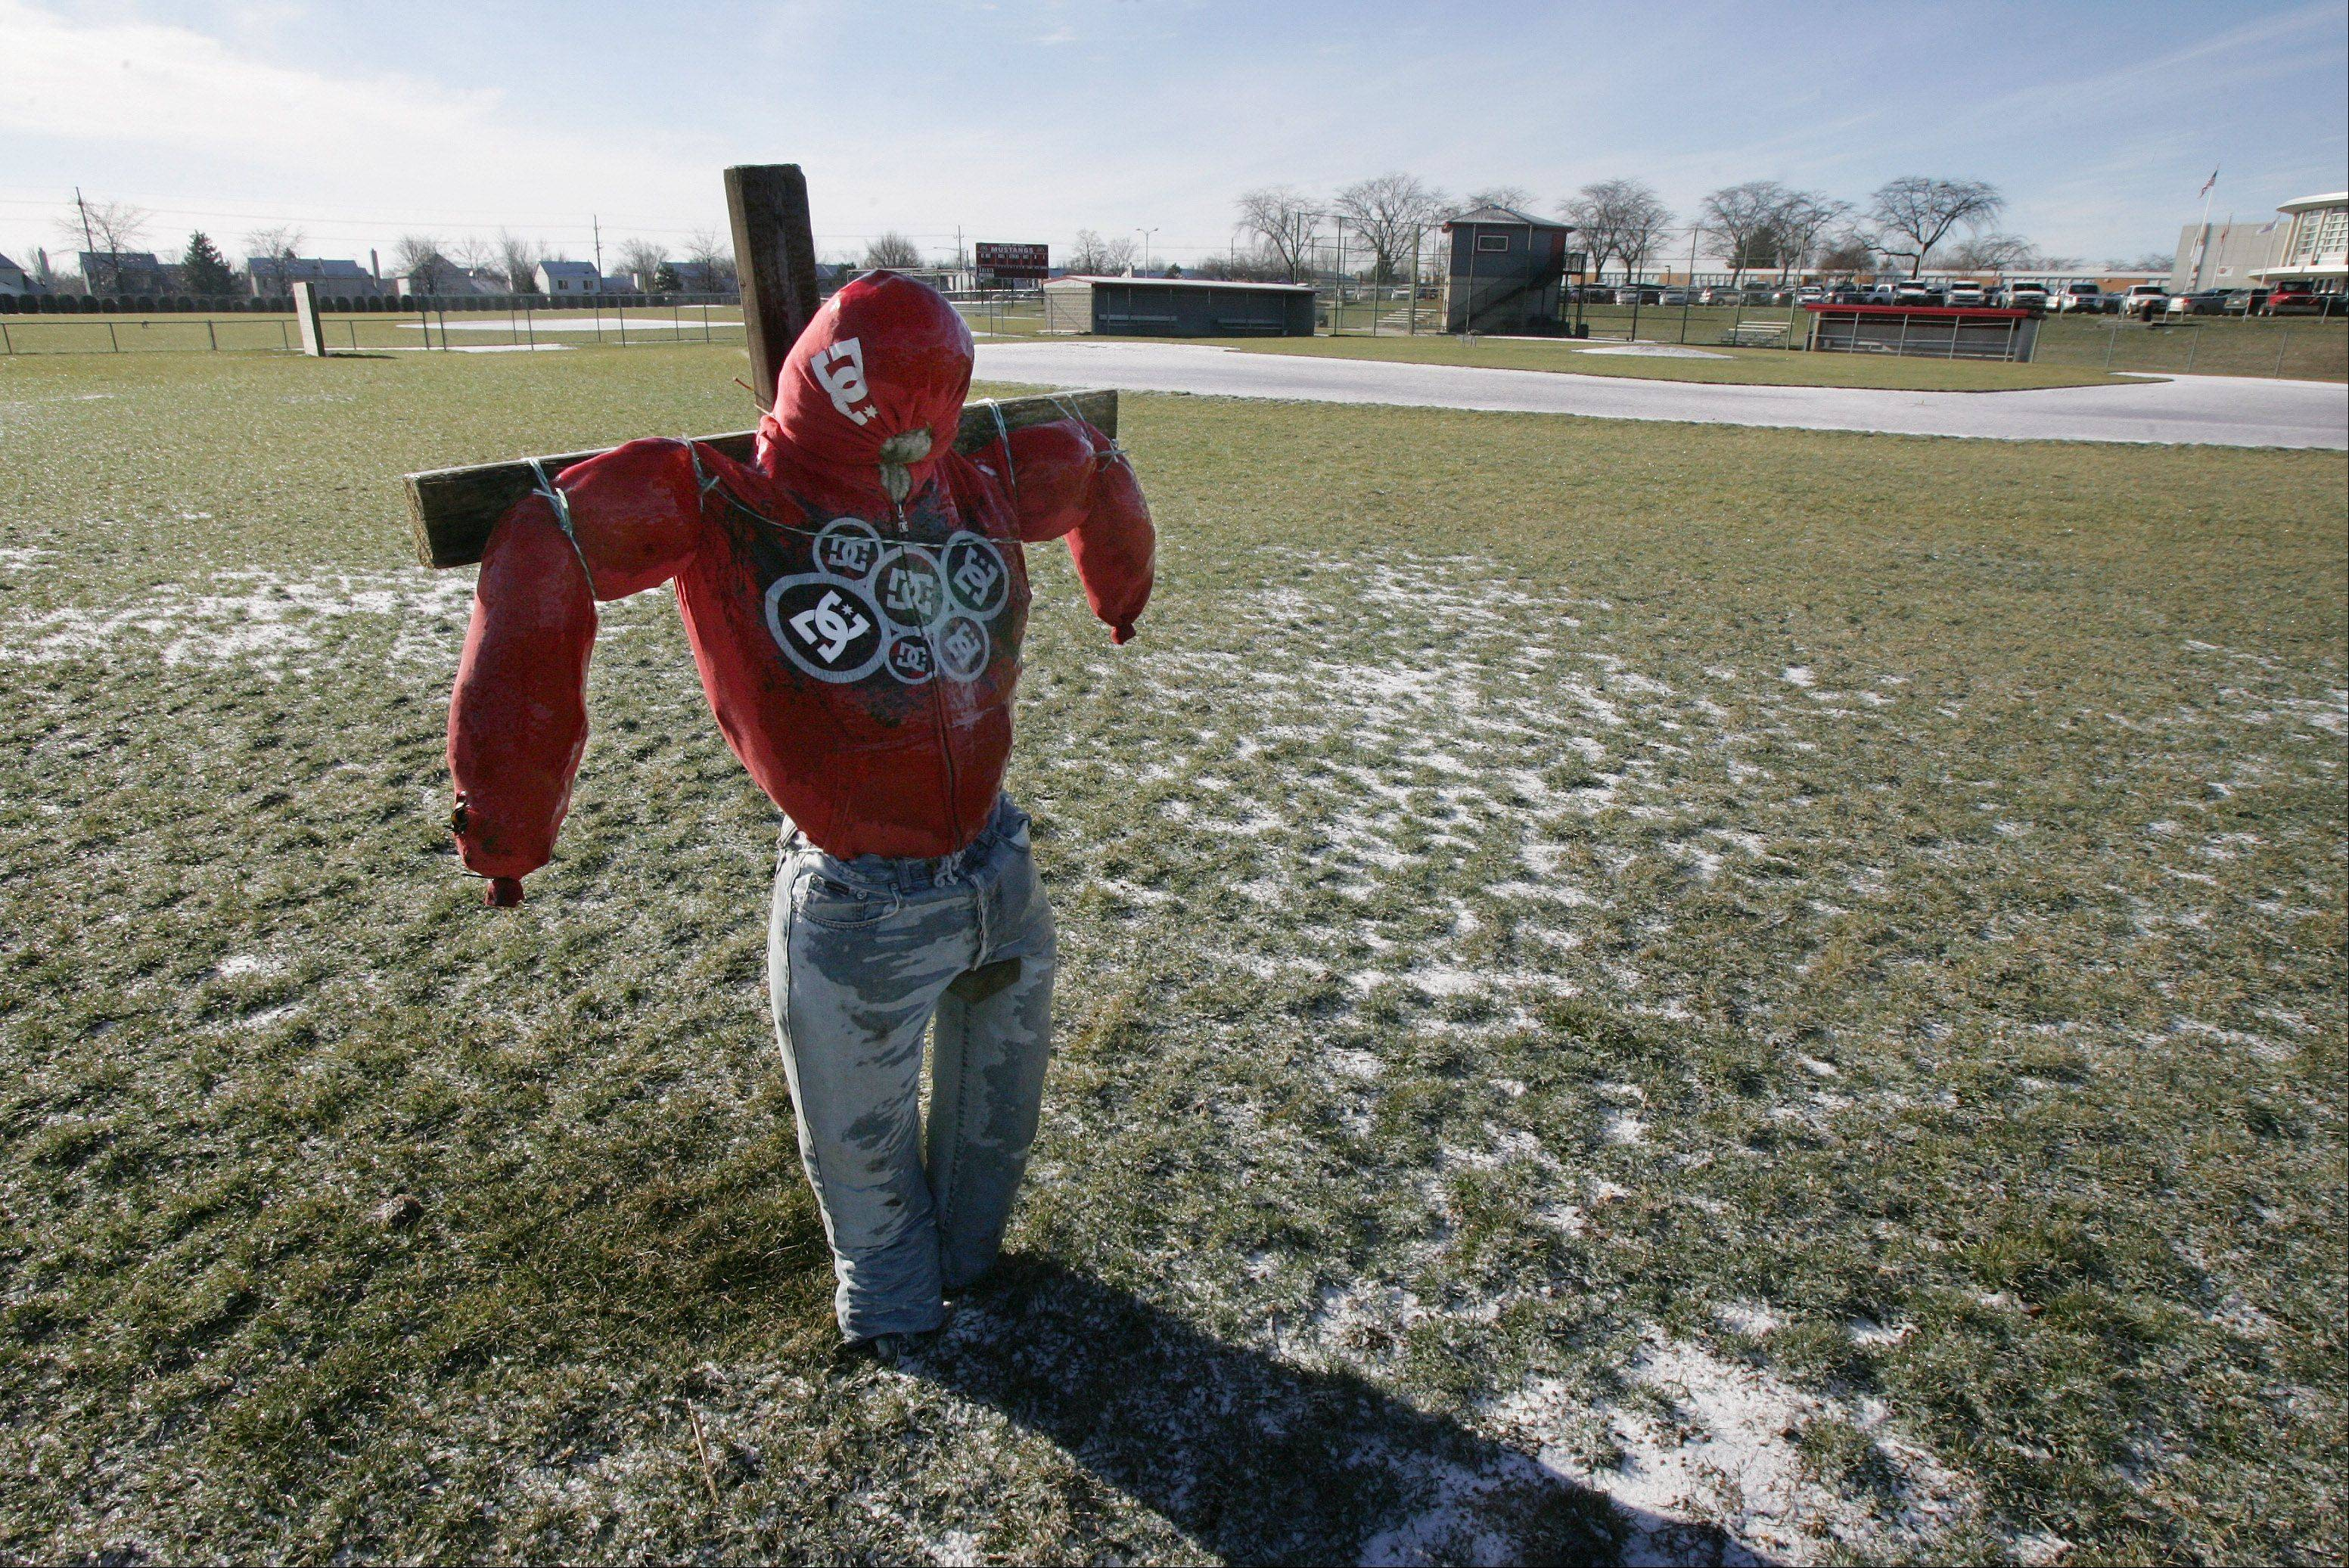 The high school version of a scarecrow is erected in centerfield of the baseball fields at Mundelein High School. Dressed in faded jeans and a red hoodie, the scarecrow is used to try to keep geese off the field. I am always on the lookout for the unusual and I spotted this stuffed object on a cross at the high school. I was taken by the care chosen in the clothing used on the scarecrow, and to the links that the high school took to try to eliminate the geese problem.